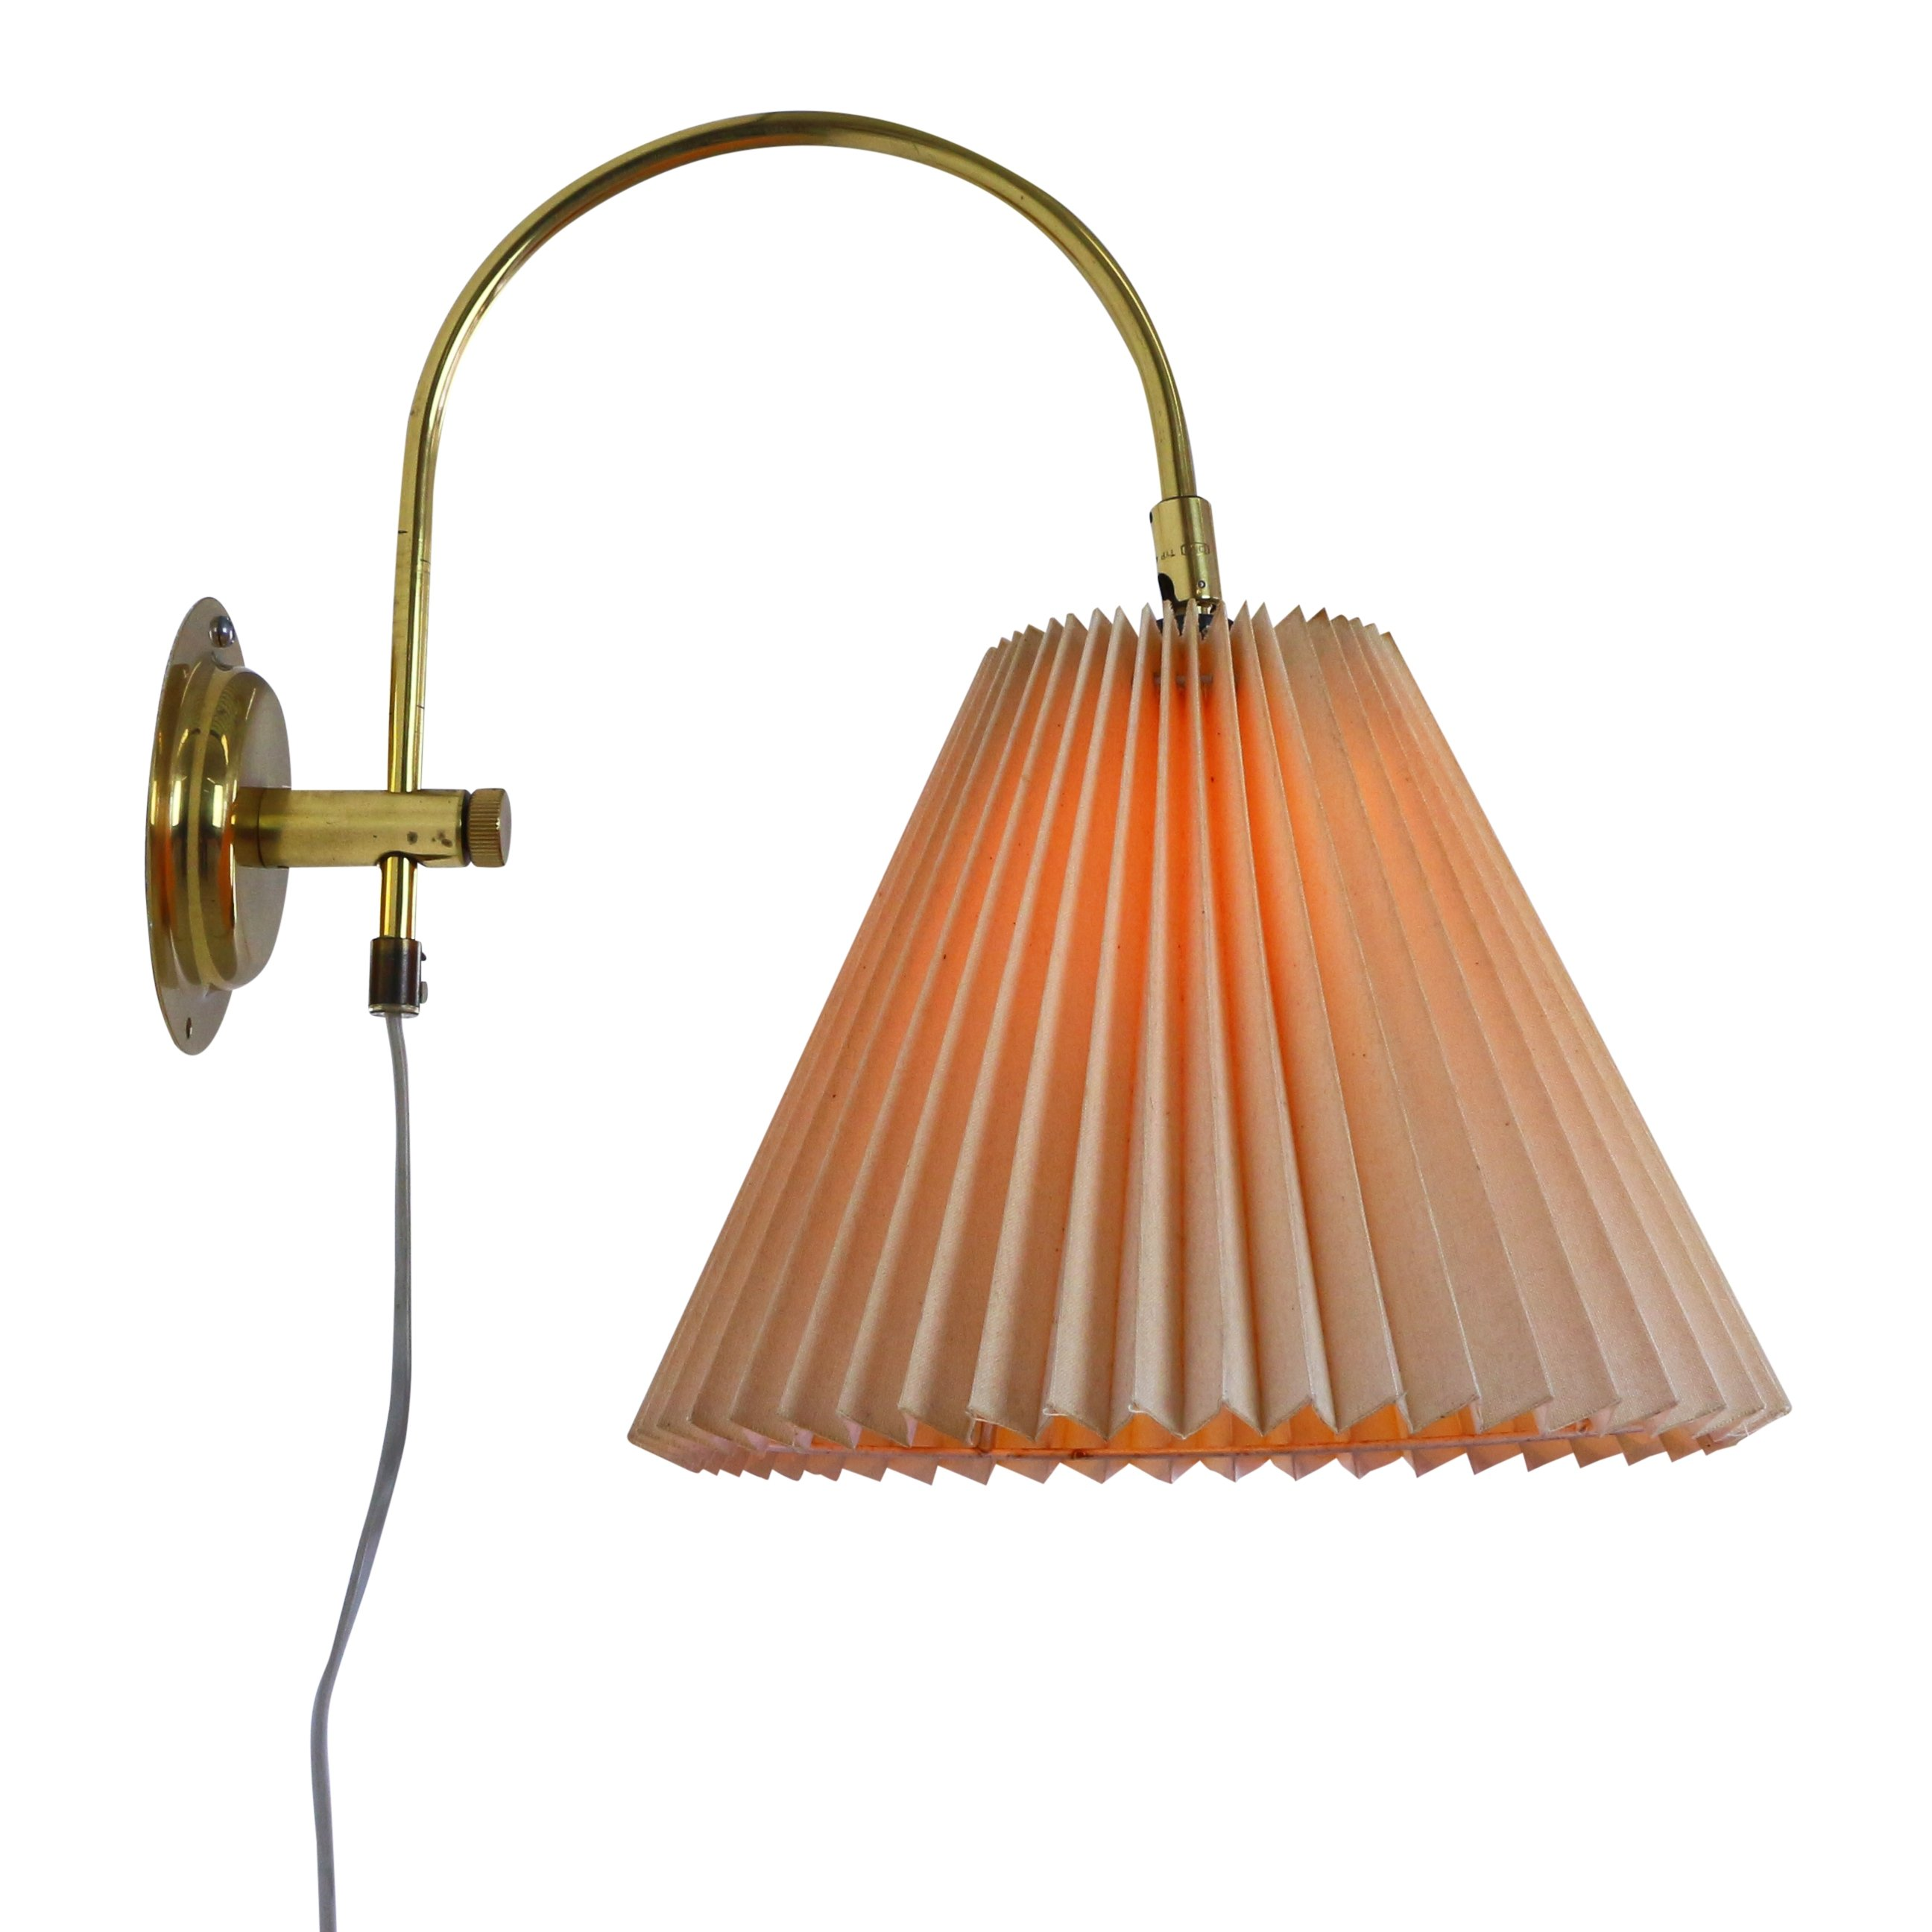 Vintage Danish Wall Lights : Danish wall light from the seventies by Dar? Belysning #1109